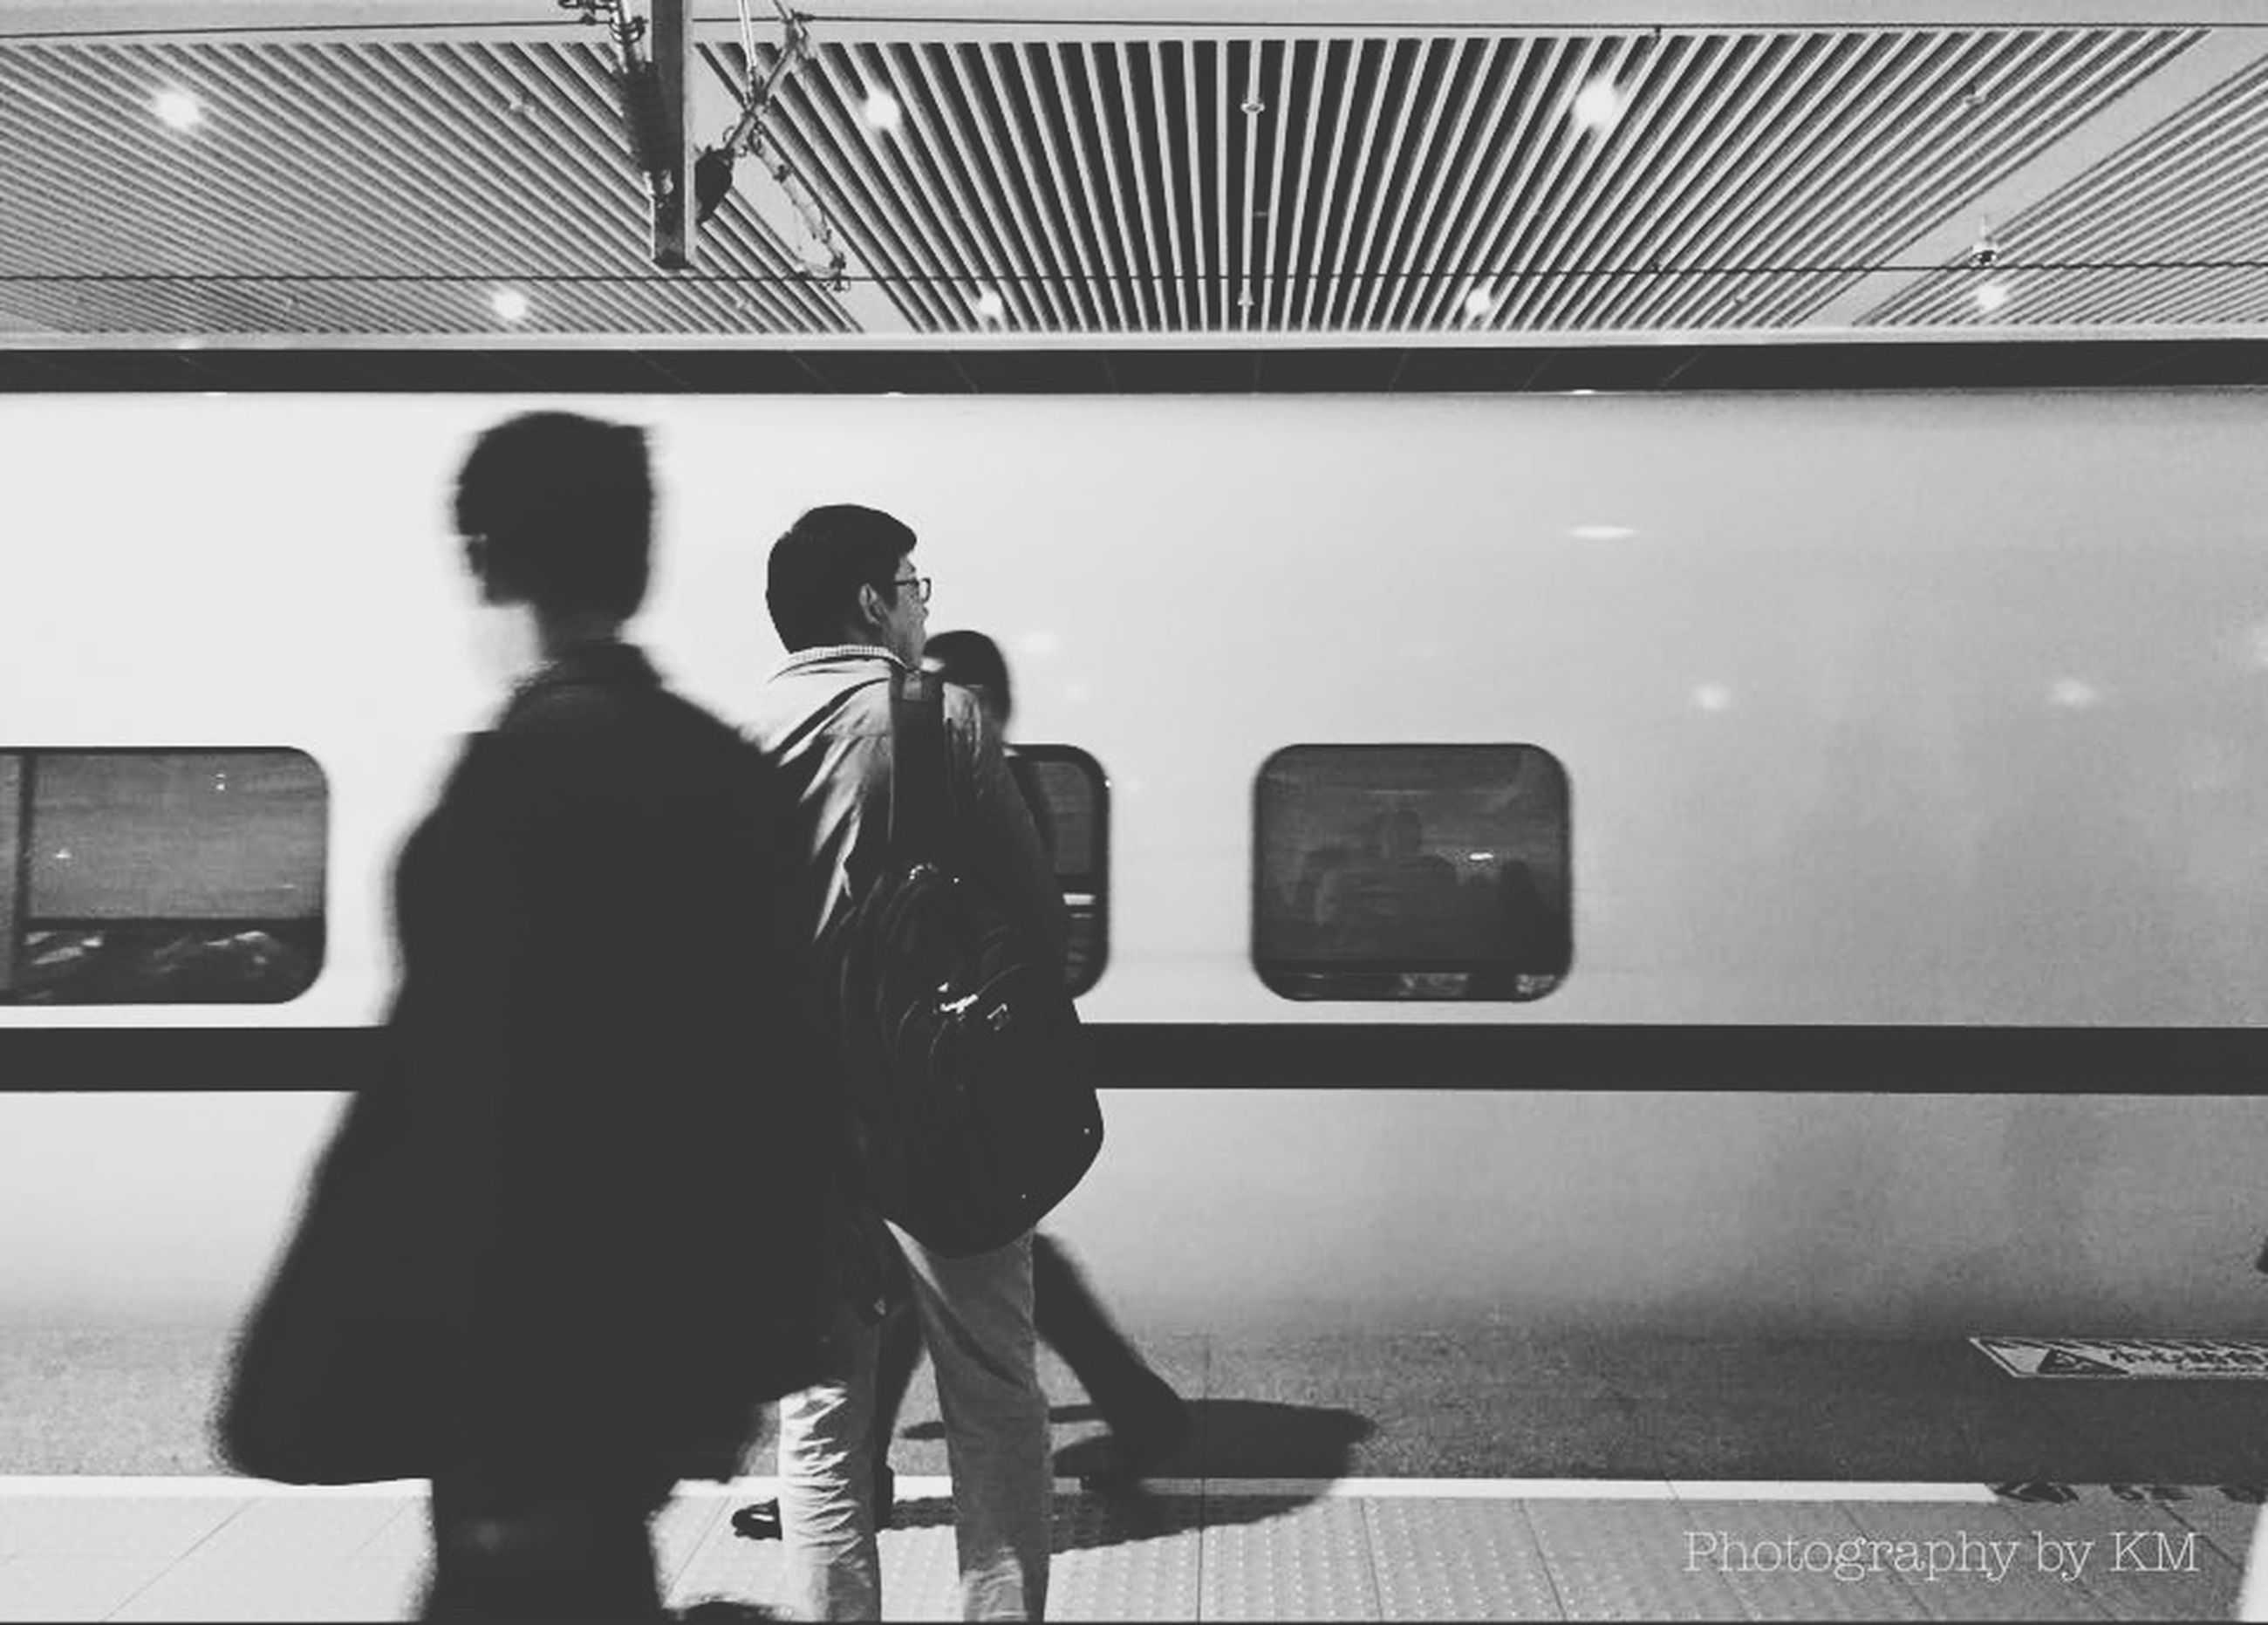 indoors, men, transportation, technology, lifestyles, rear view, communication, leisure activity, full length, travel, public transportation, mode of transport, wireless technology, person, photography themes, passenger, connection